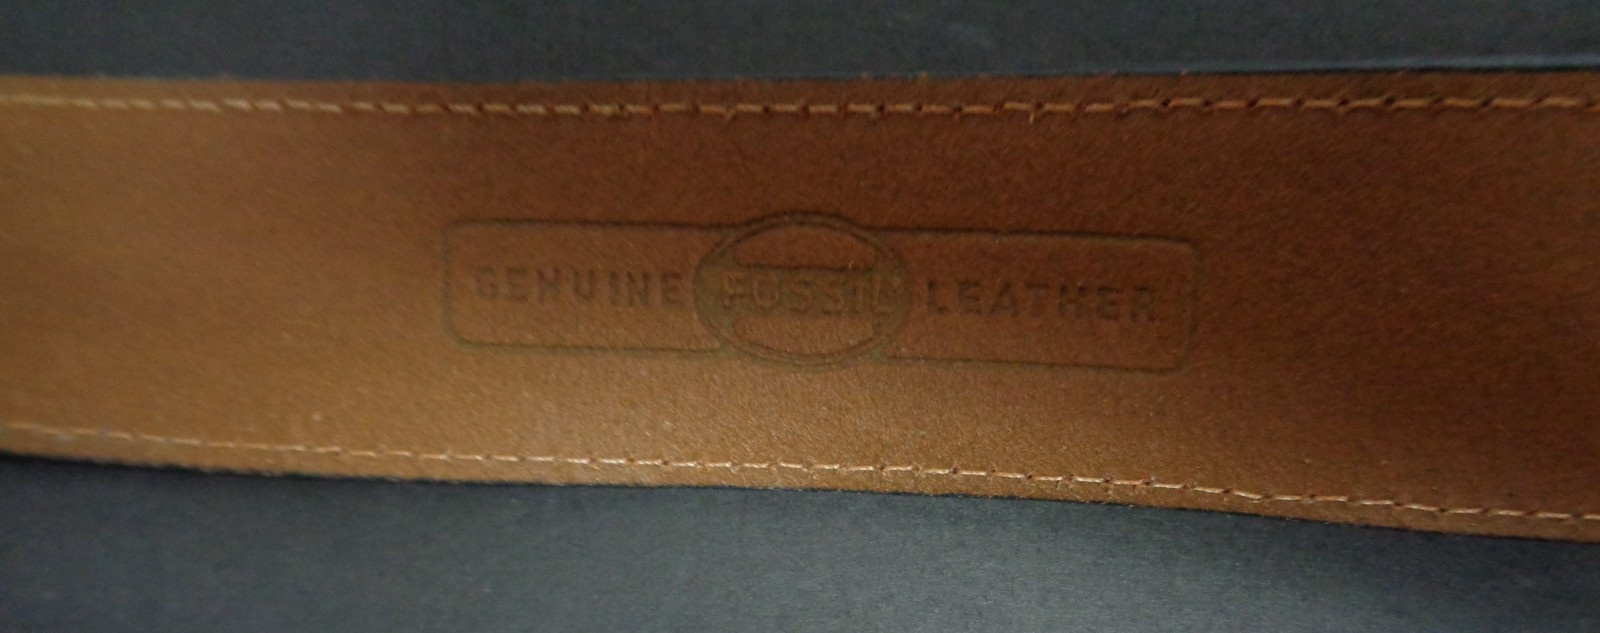 """Womens Leather FOSSIL Belt Colorful Graphics Beach Theme Waist 34""""- 38"""""""